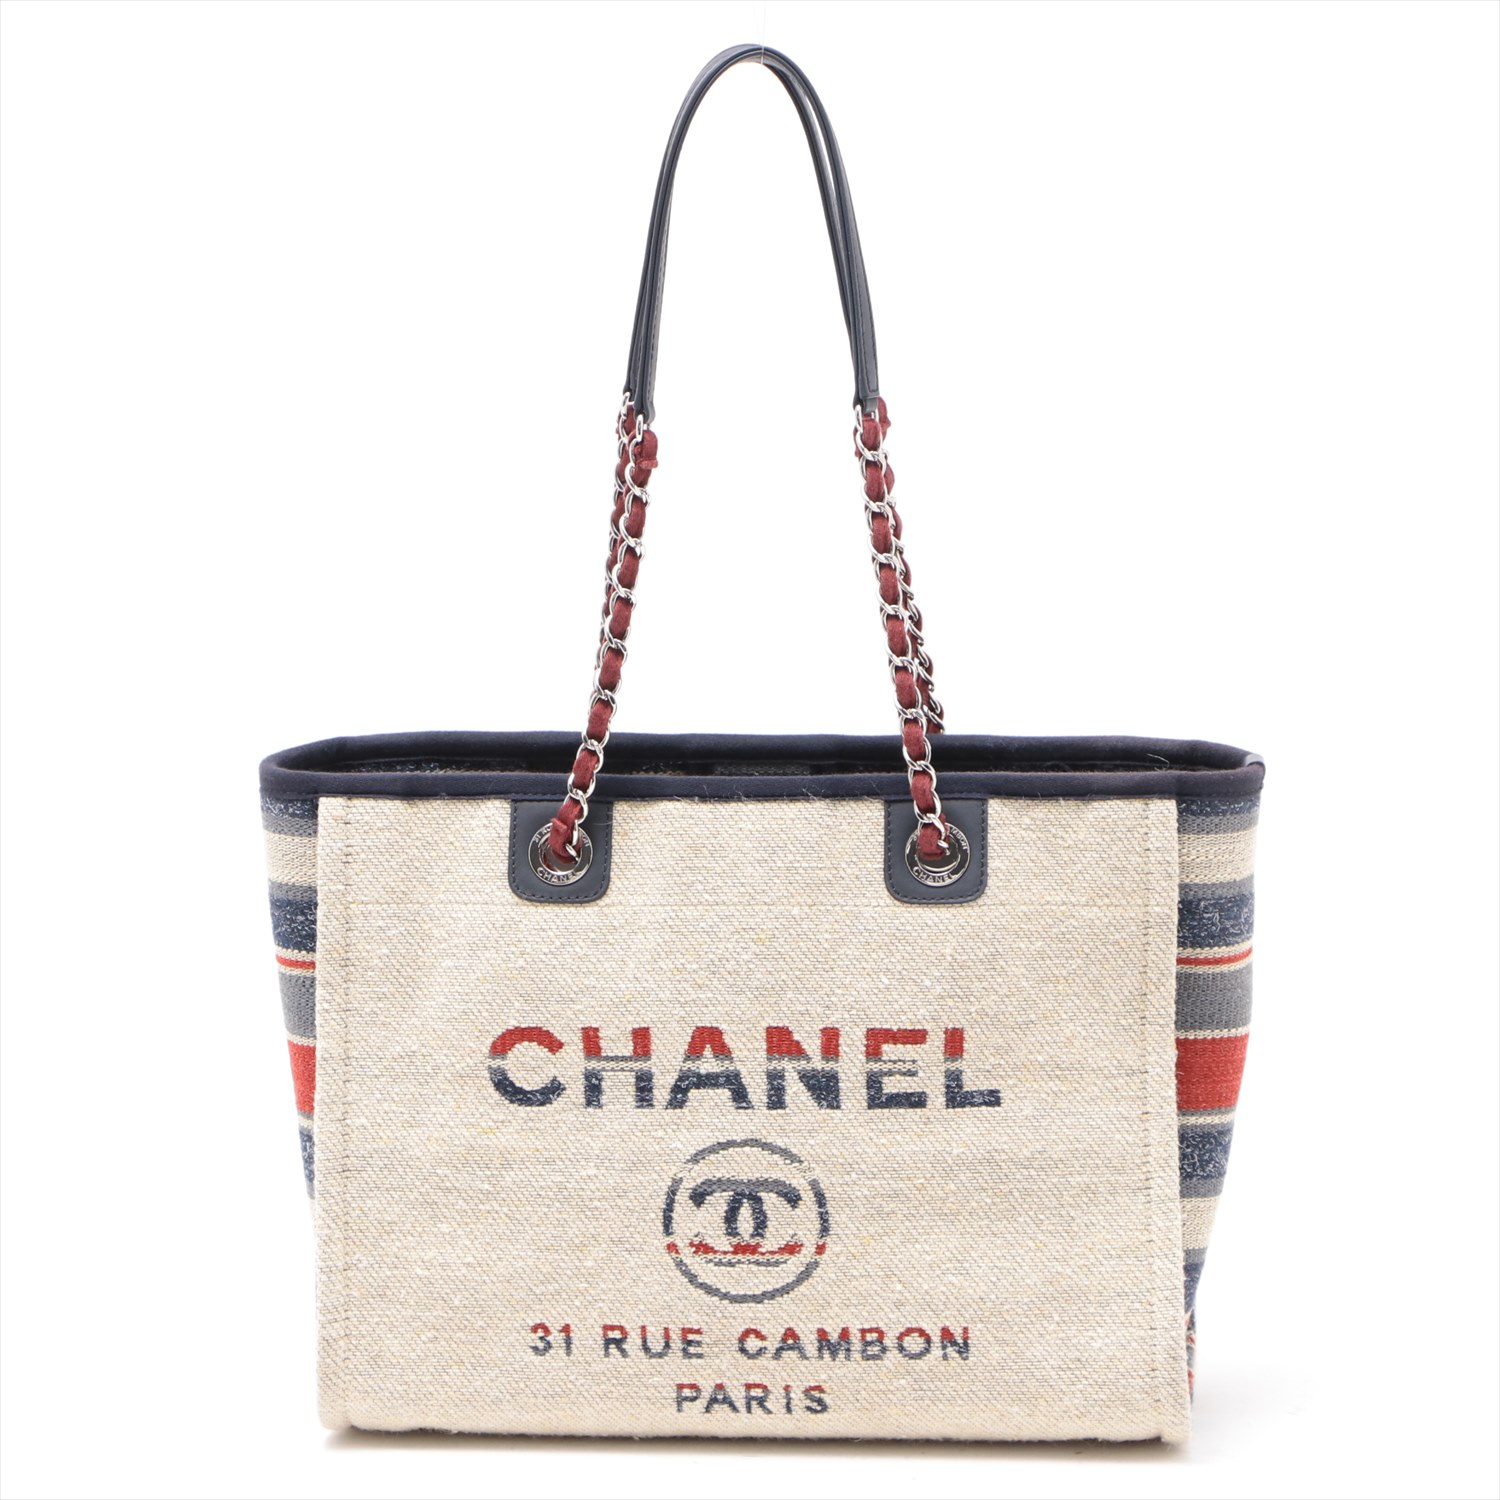 [Used goods] Chanel Deauville canvas × leather chain Tote Bag Beige Silver hardware